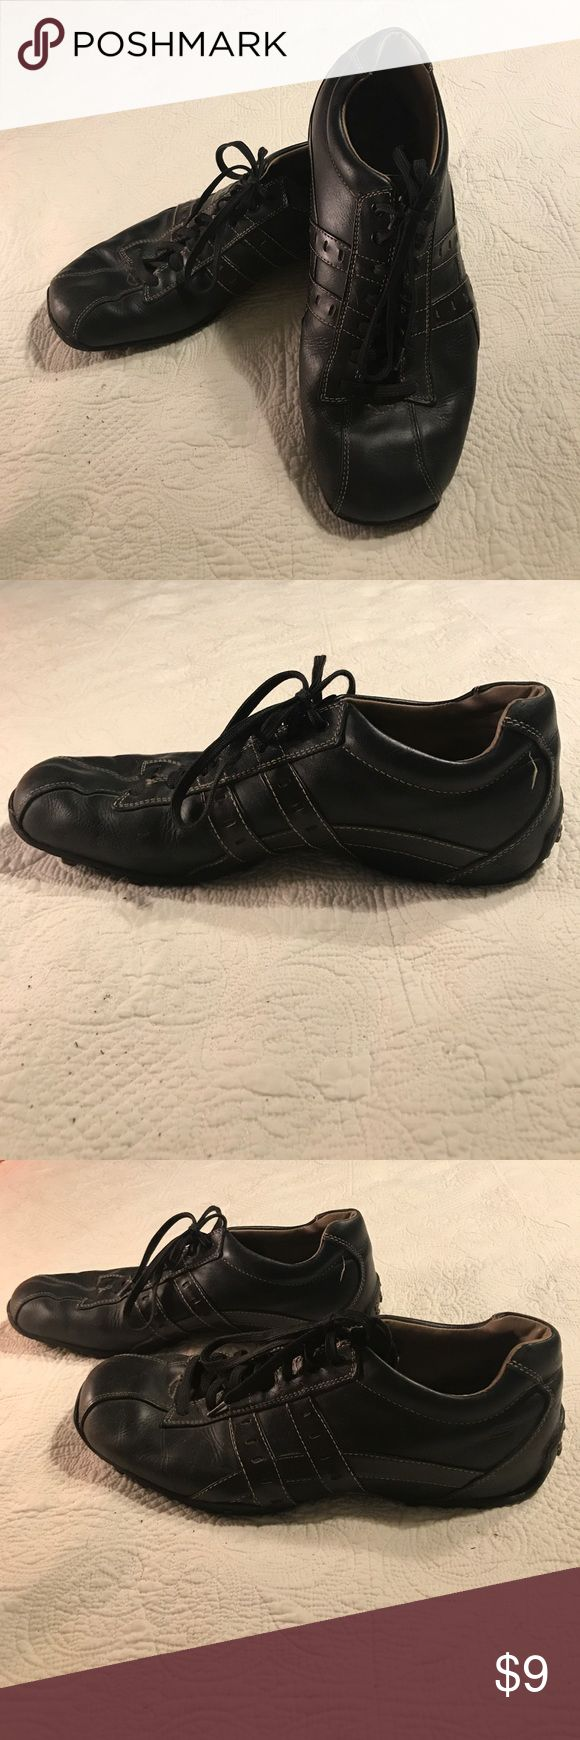 Men's Skechers shoes size 11.5 Men's Skechers black shoes, size 11.5. Casual enough to wear with jeans or with khaki pants. Missing insole, could be replaced with orthotics from any store. Skechers Shoes Loafers & Slip-Ons